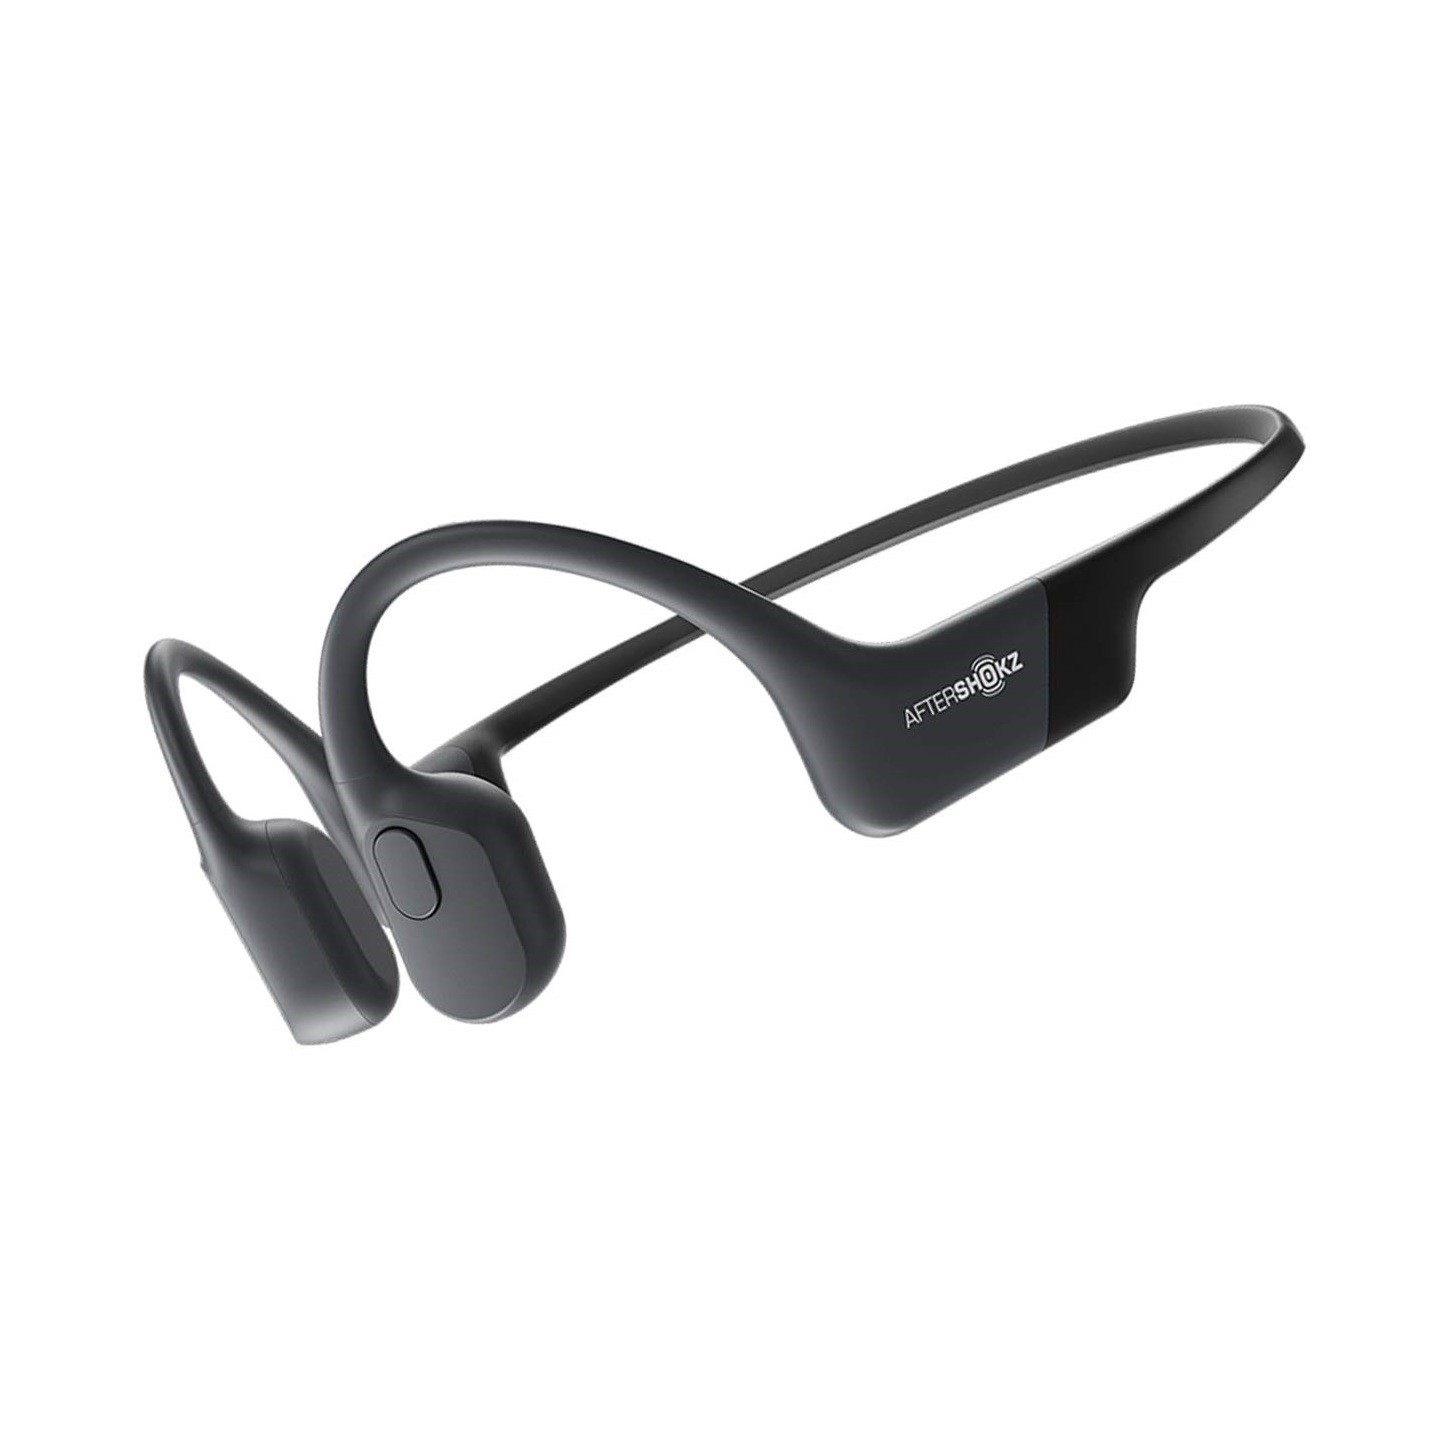 Aftershokz Aeropex Bone Conduction Headphones